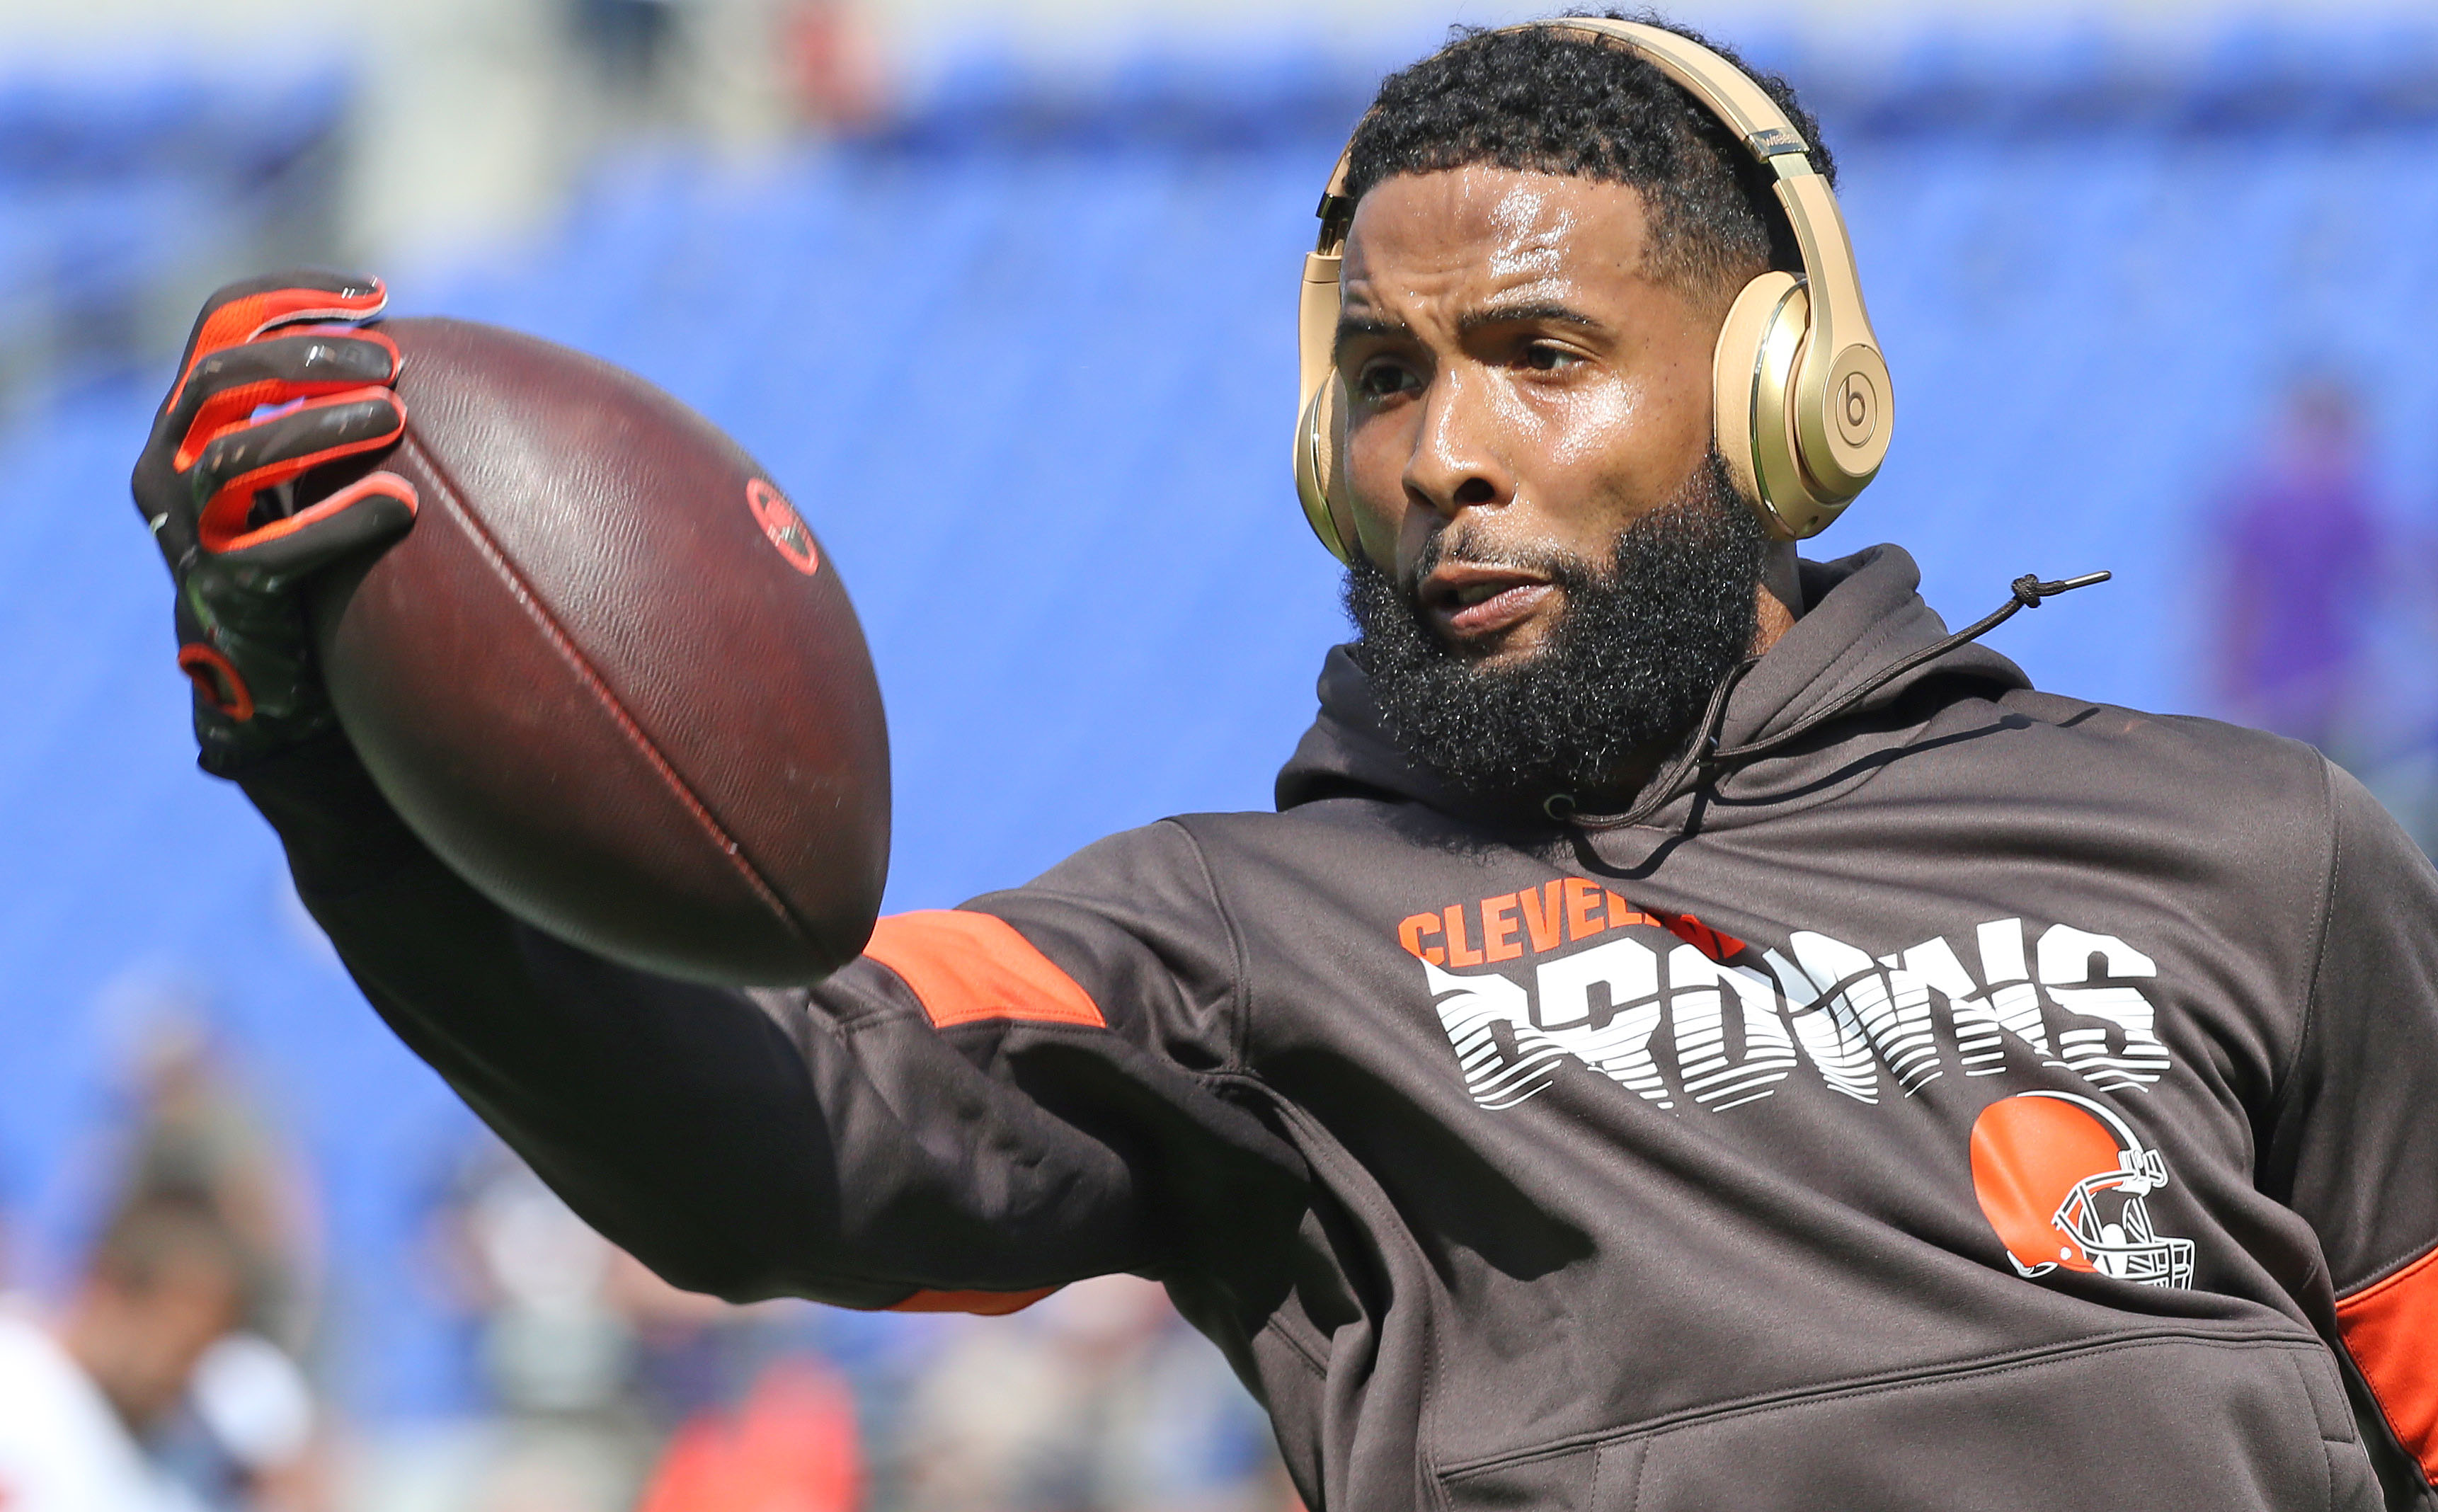 Cleveland Browns vs. San Francisco 49ers: How to watch, time, channel, streaming